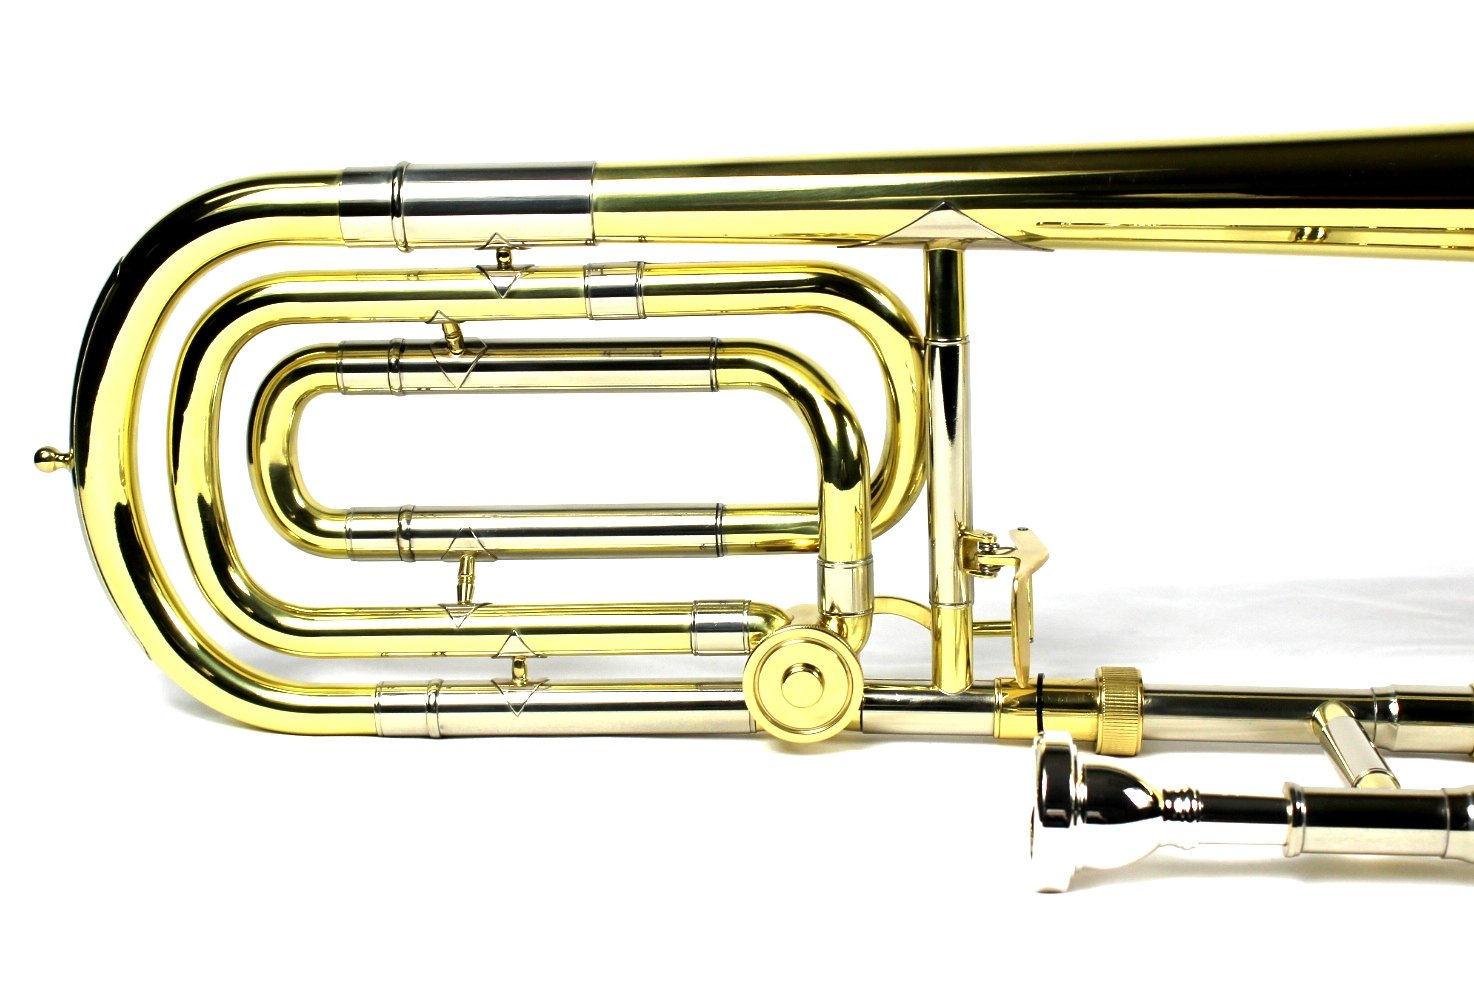 Brand New Bb/F Bass Trombone w/ Case and Mouthpiece- Gold Lacquer Finish by Moz (Image #6)